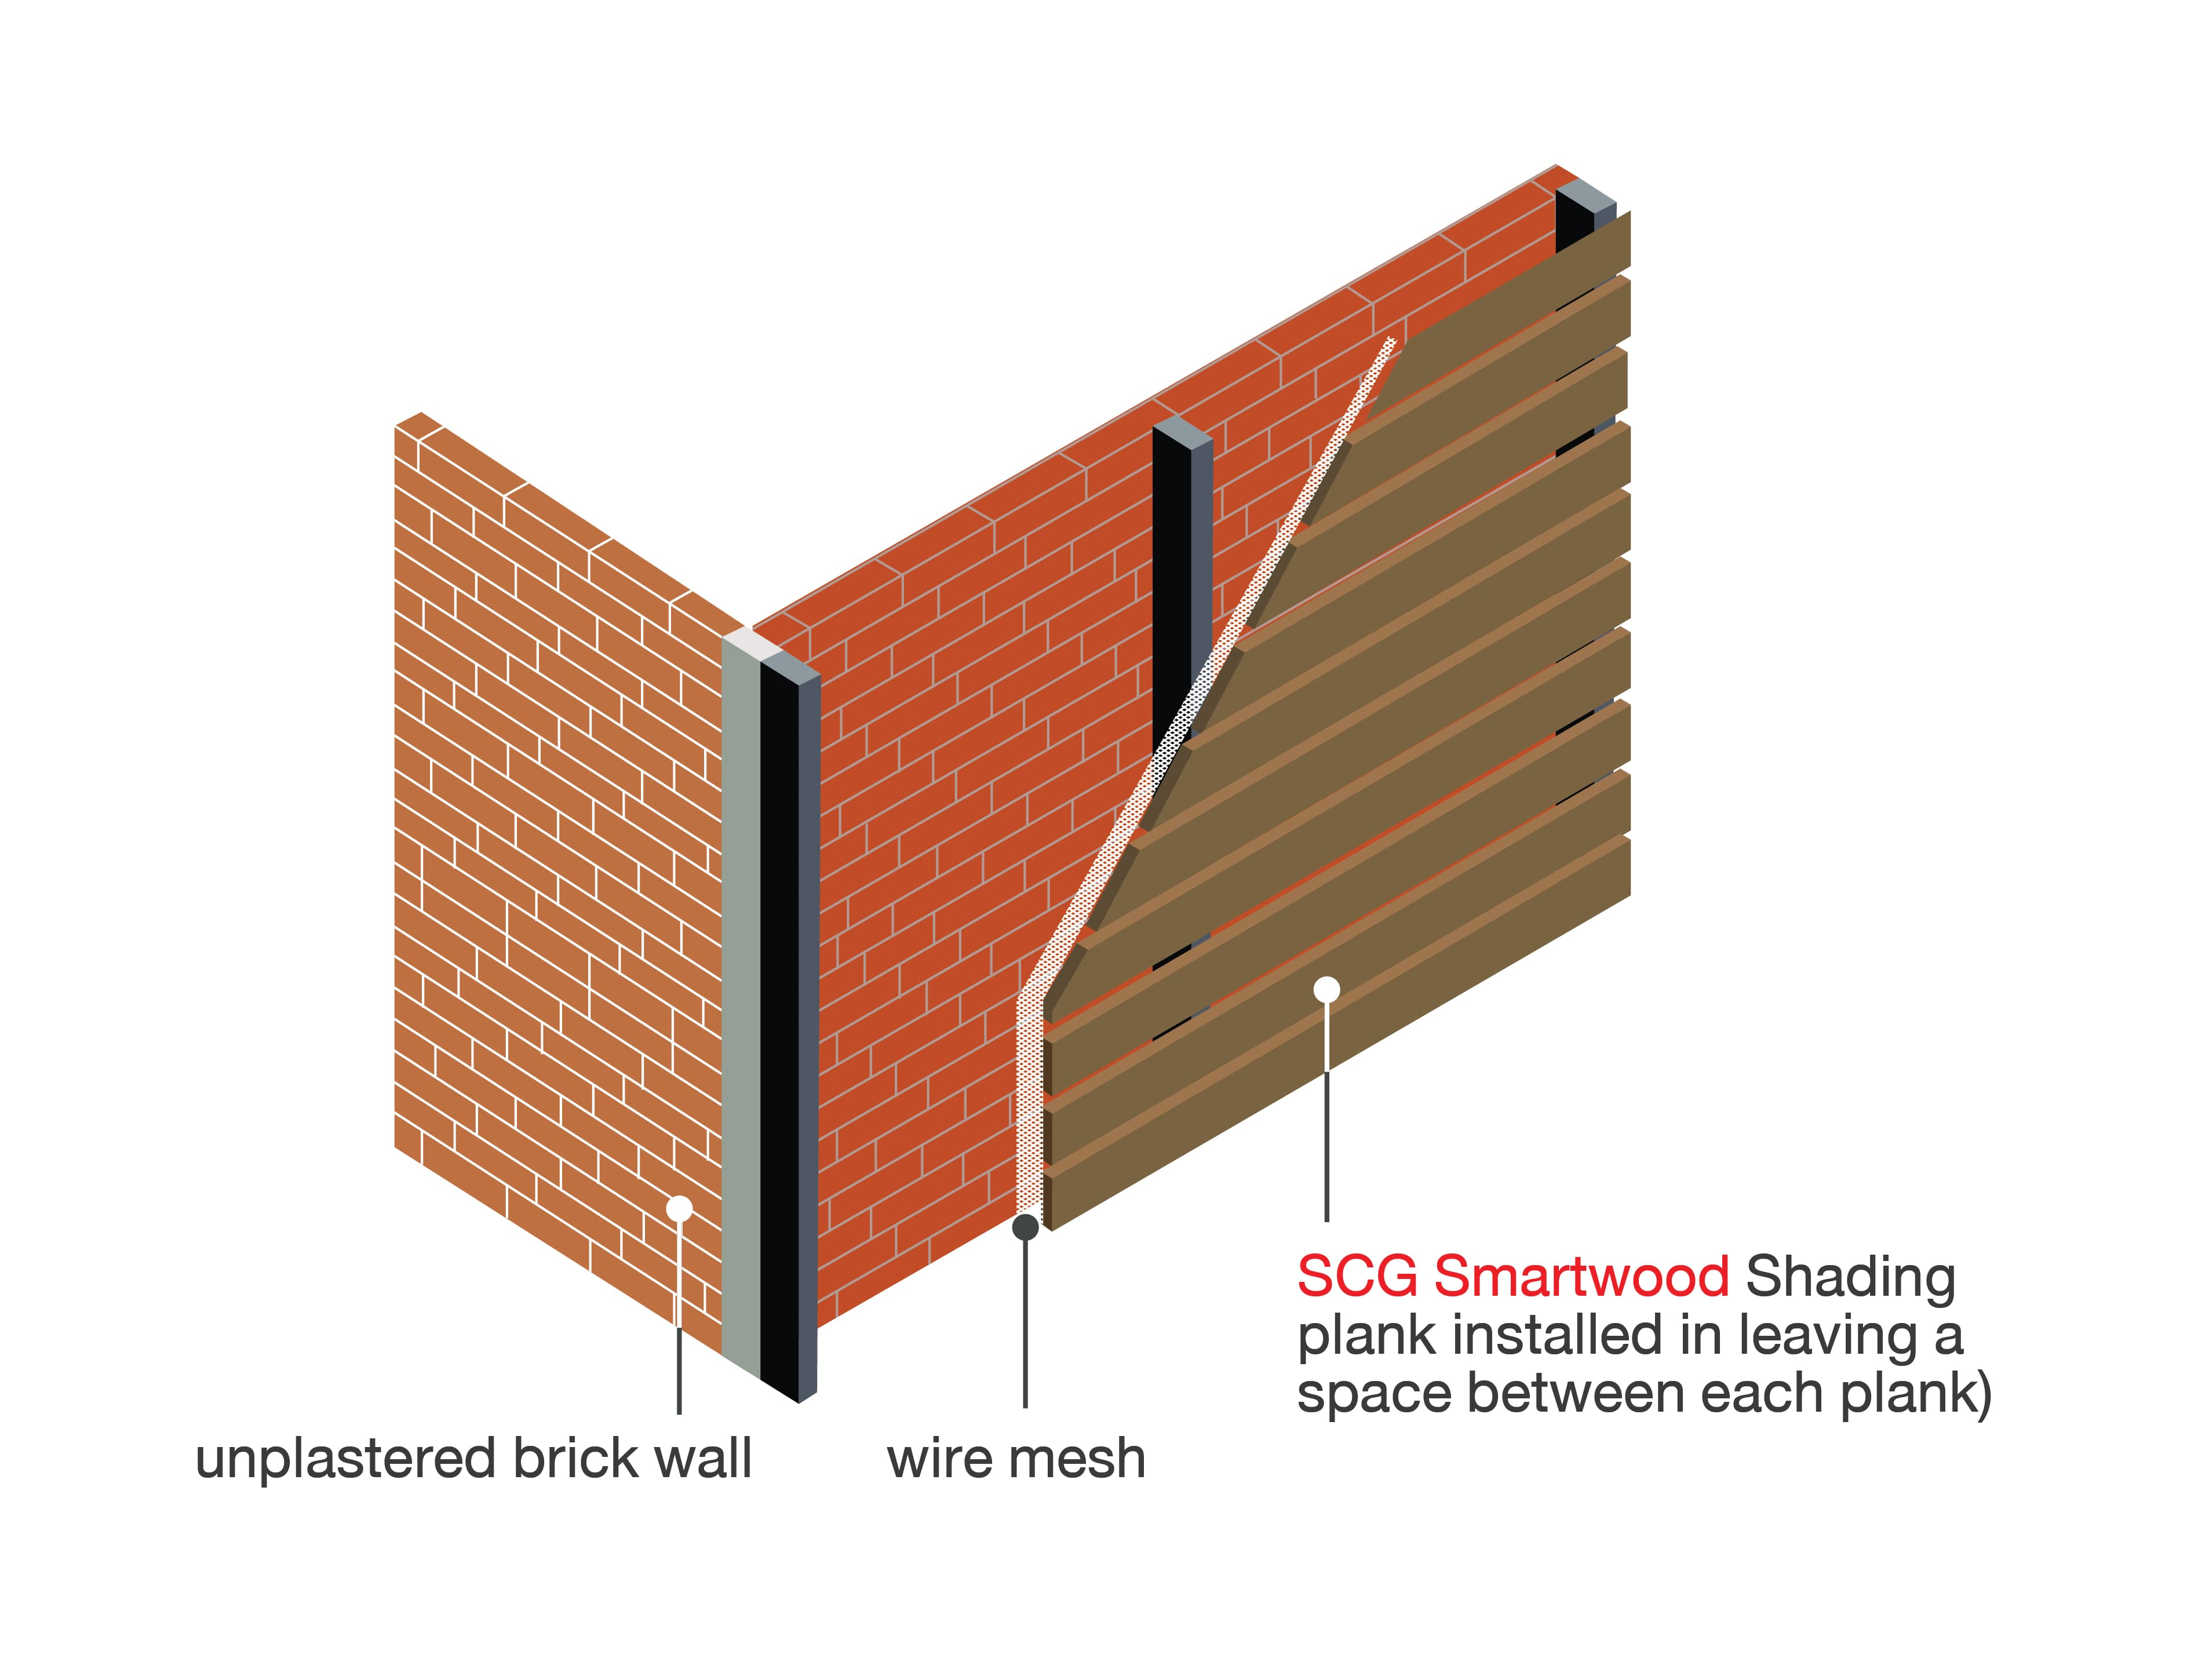 Brick wall cover with lattice panels and steel framing